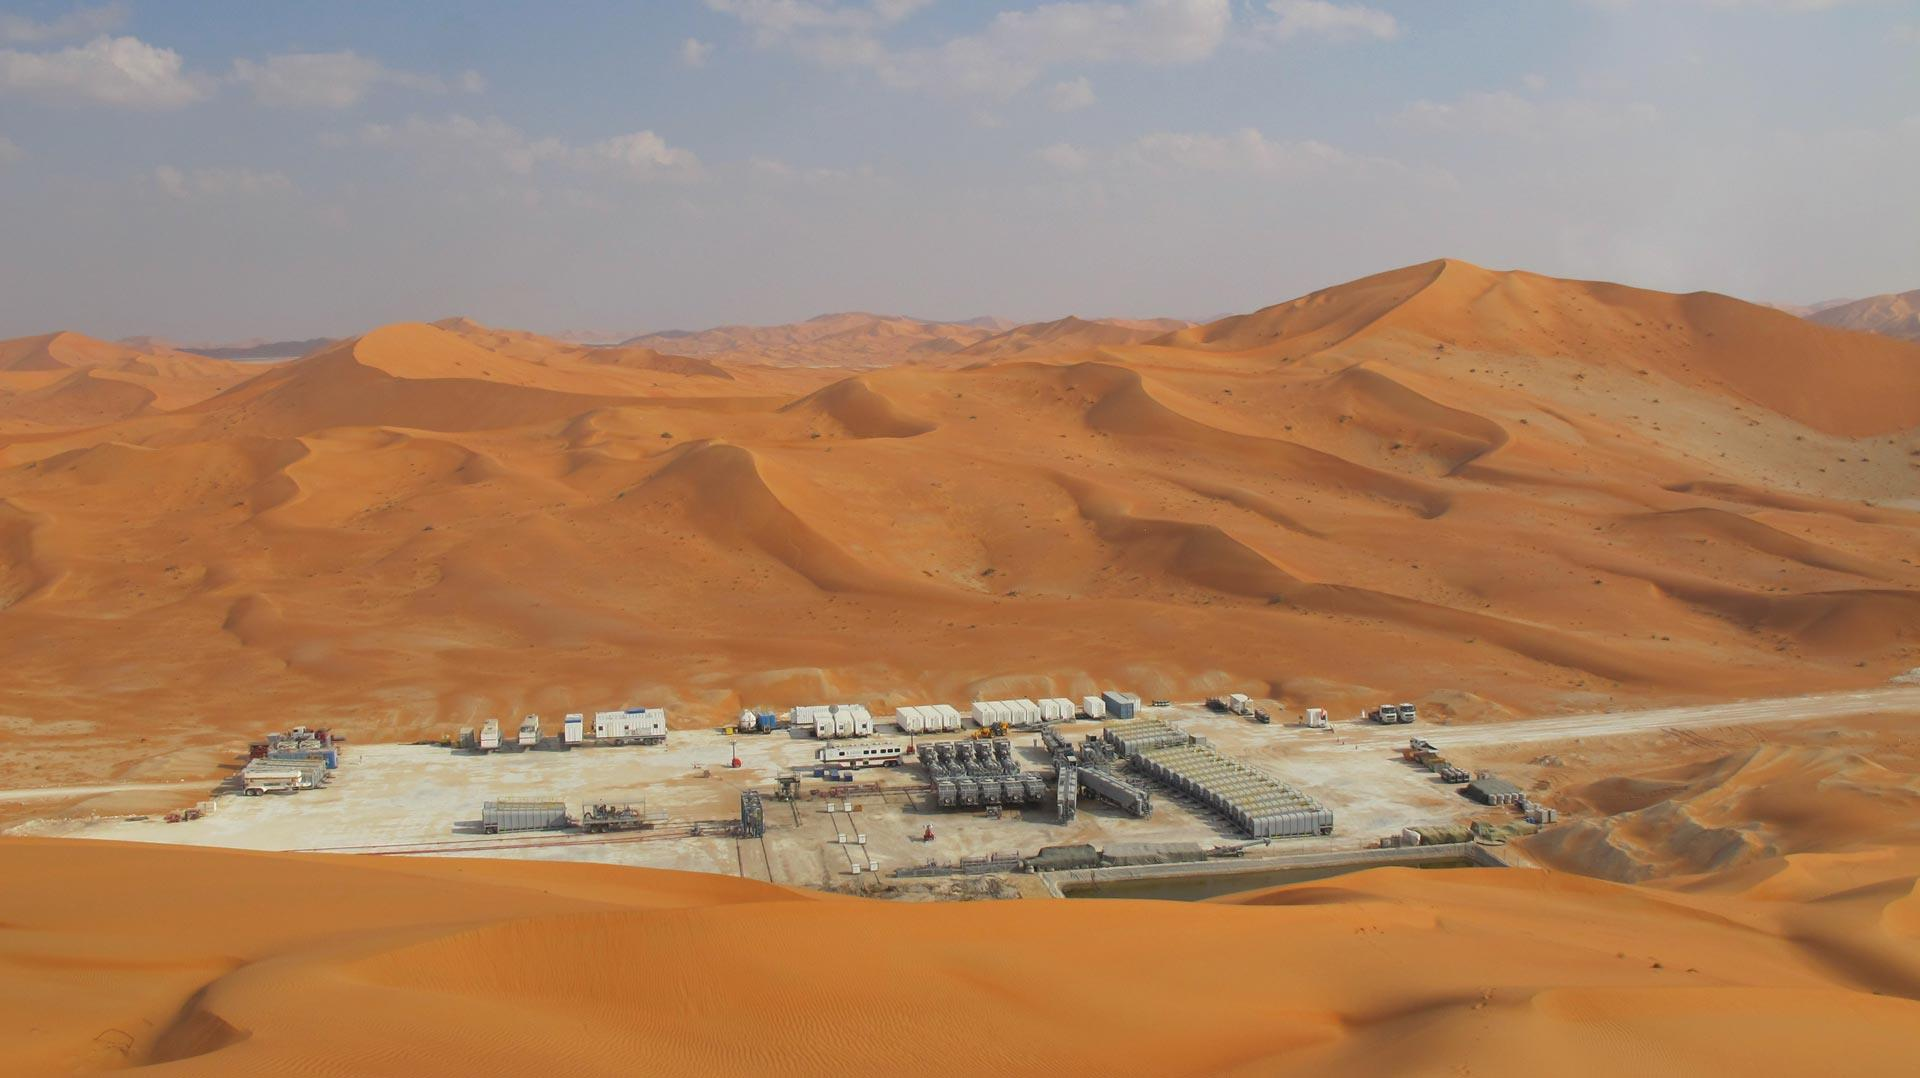 DASTRAC III Data Acquisition and Control System in the desert